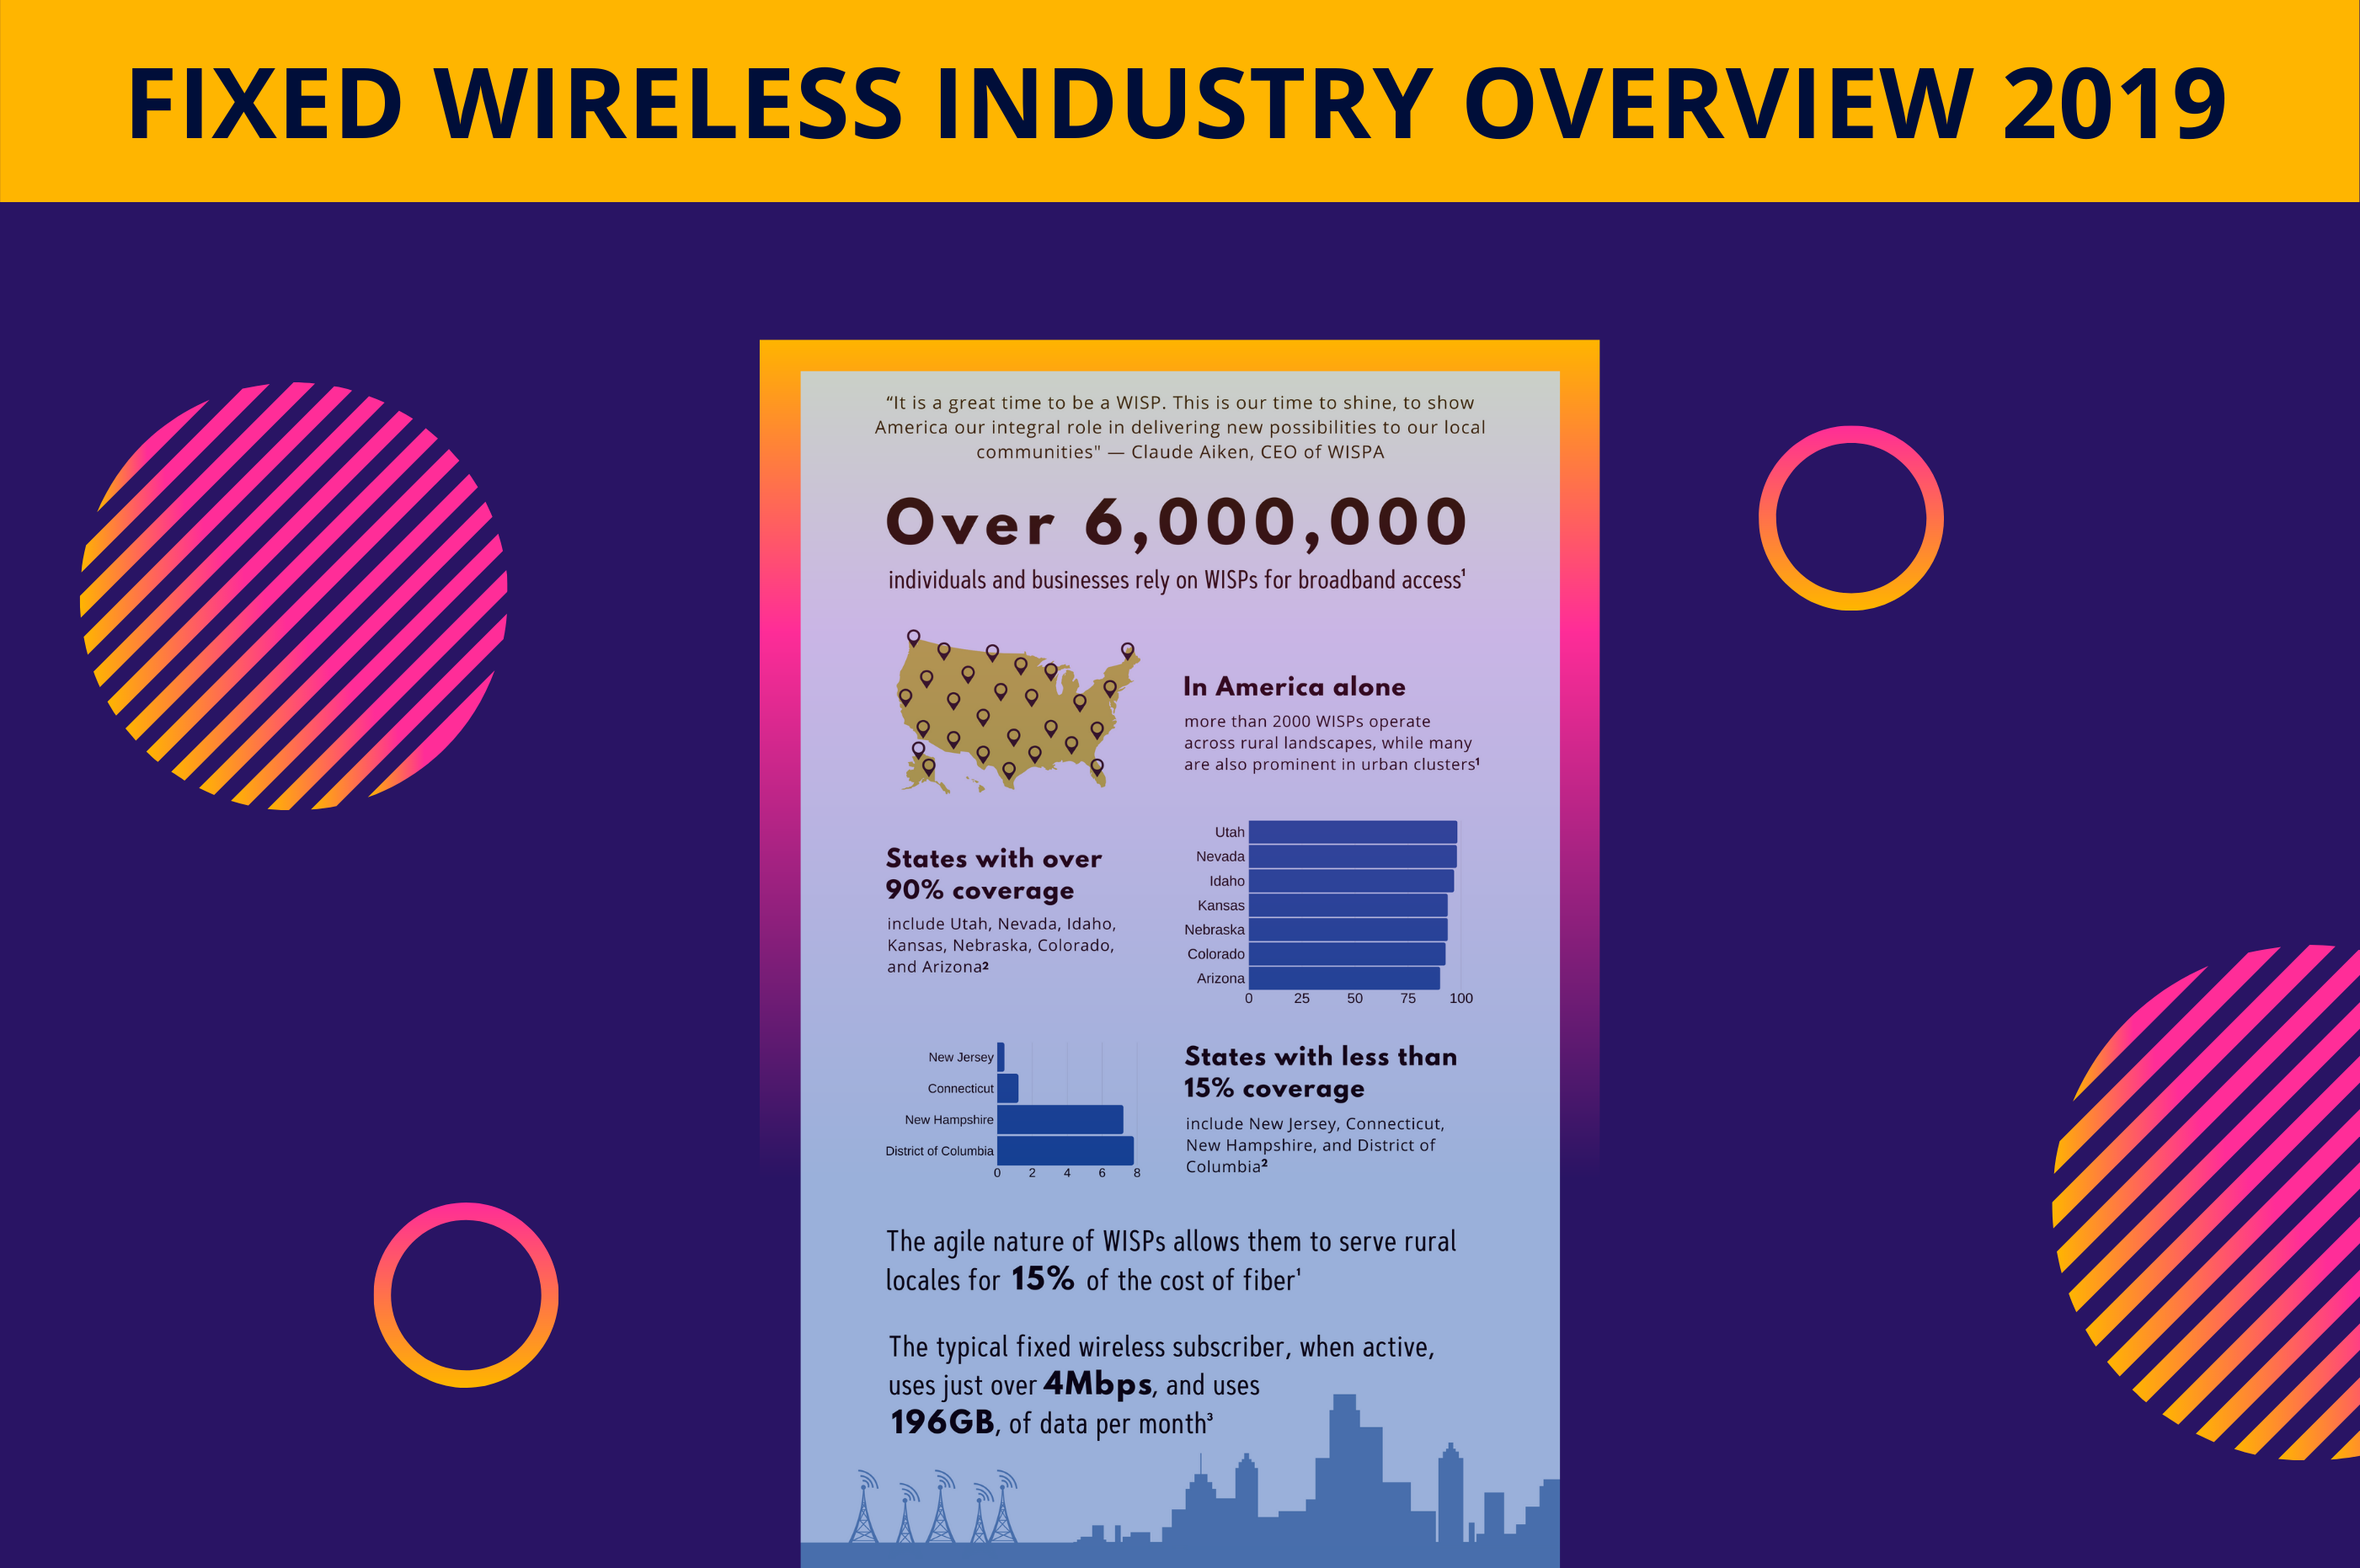 Fixed Wireless Industry Overview 2019 | Infographic by Preseem